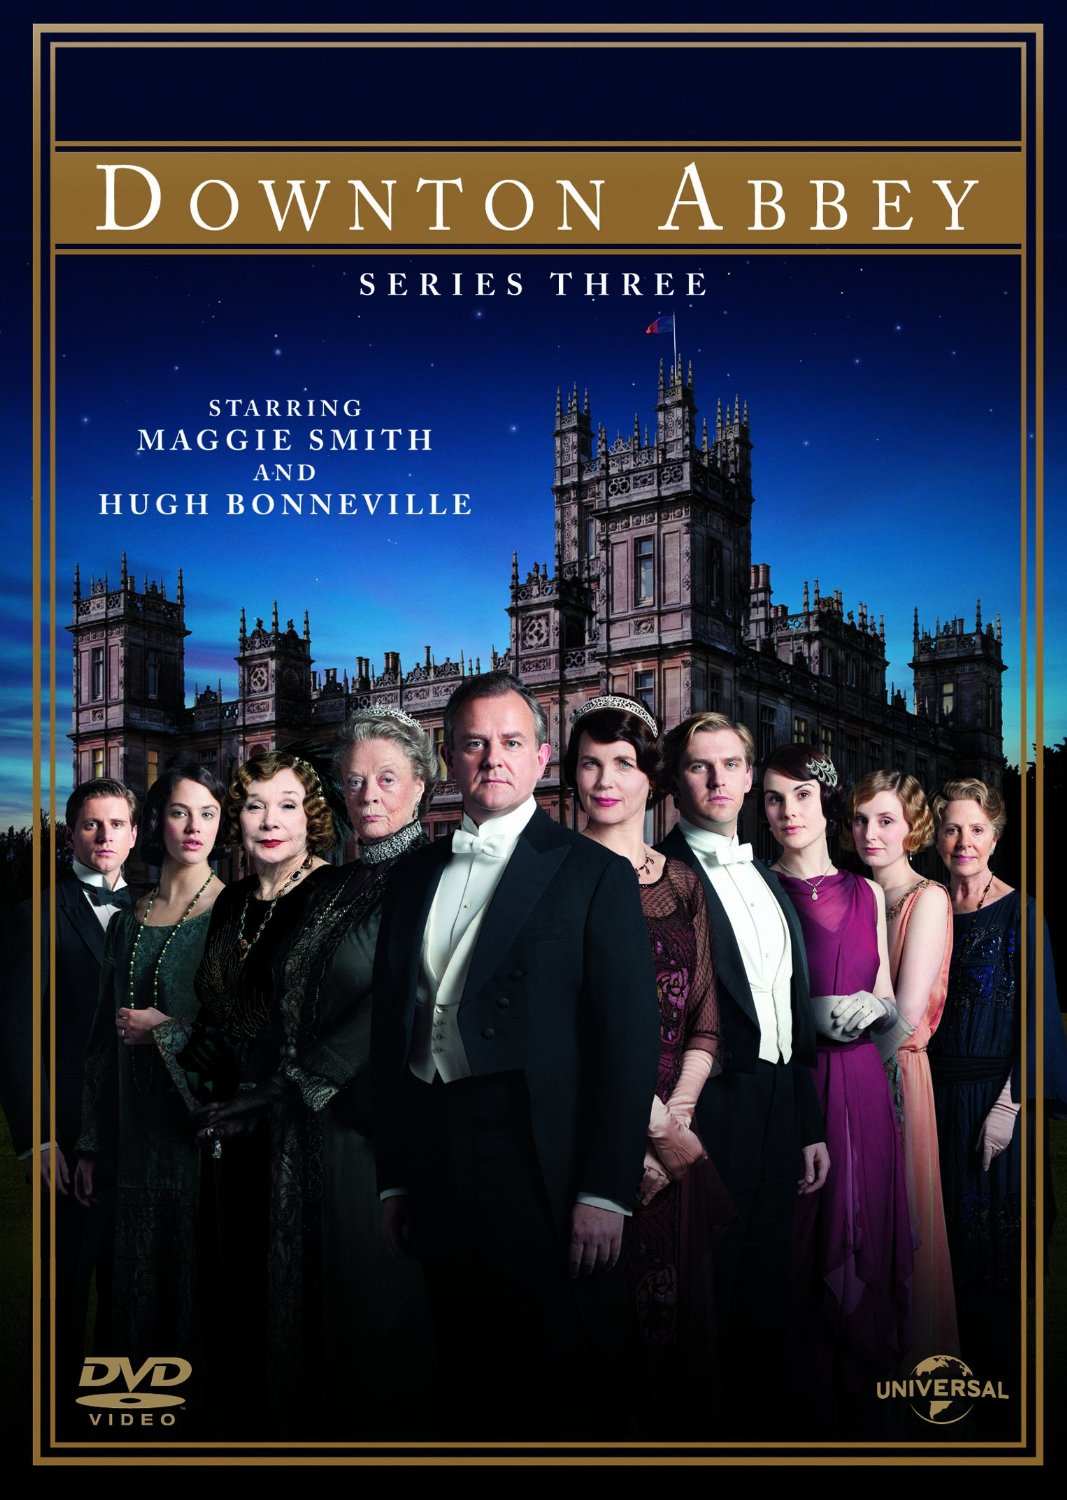 Downton Abbey Series 3 – are you hooked Today's Debate